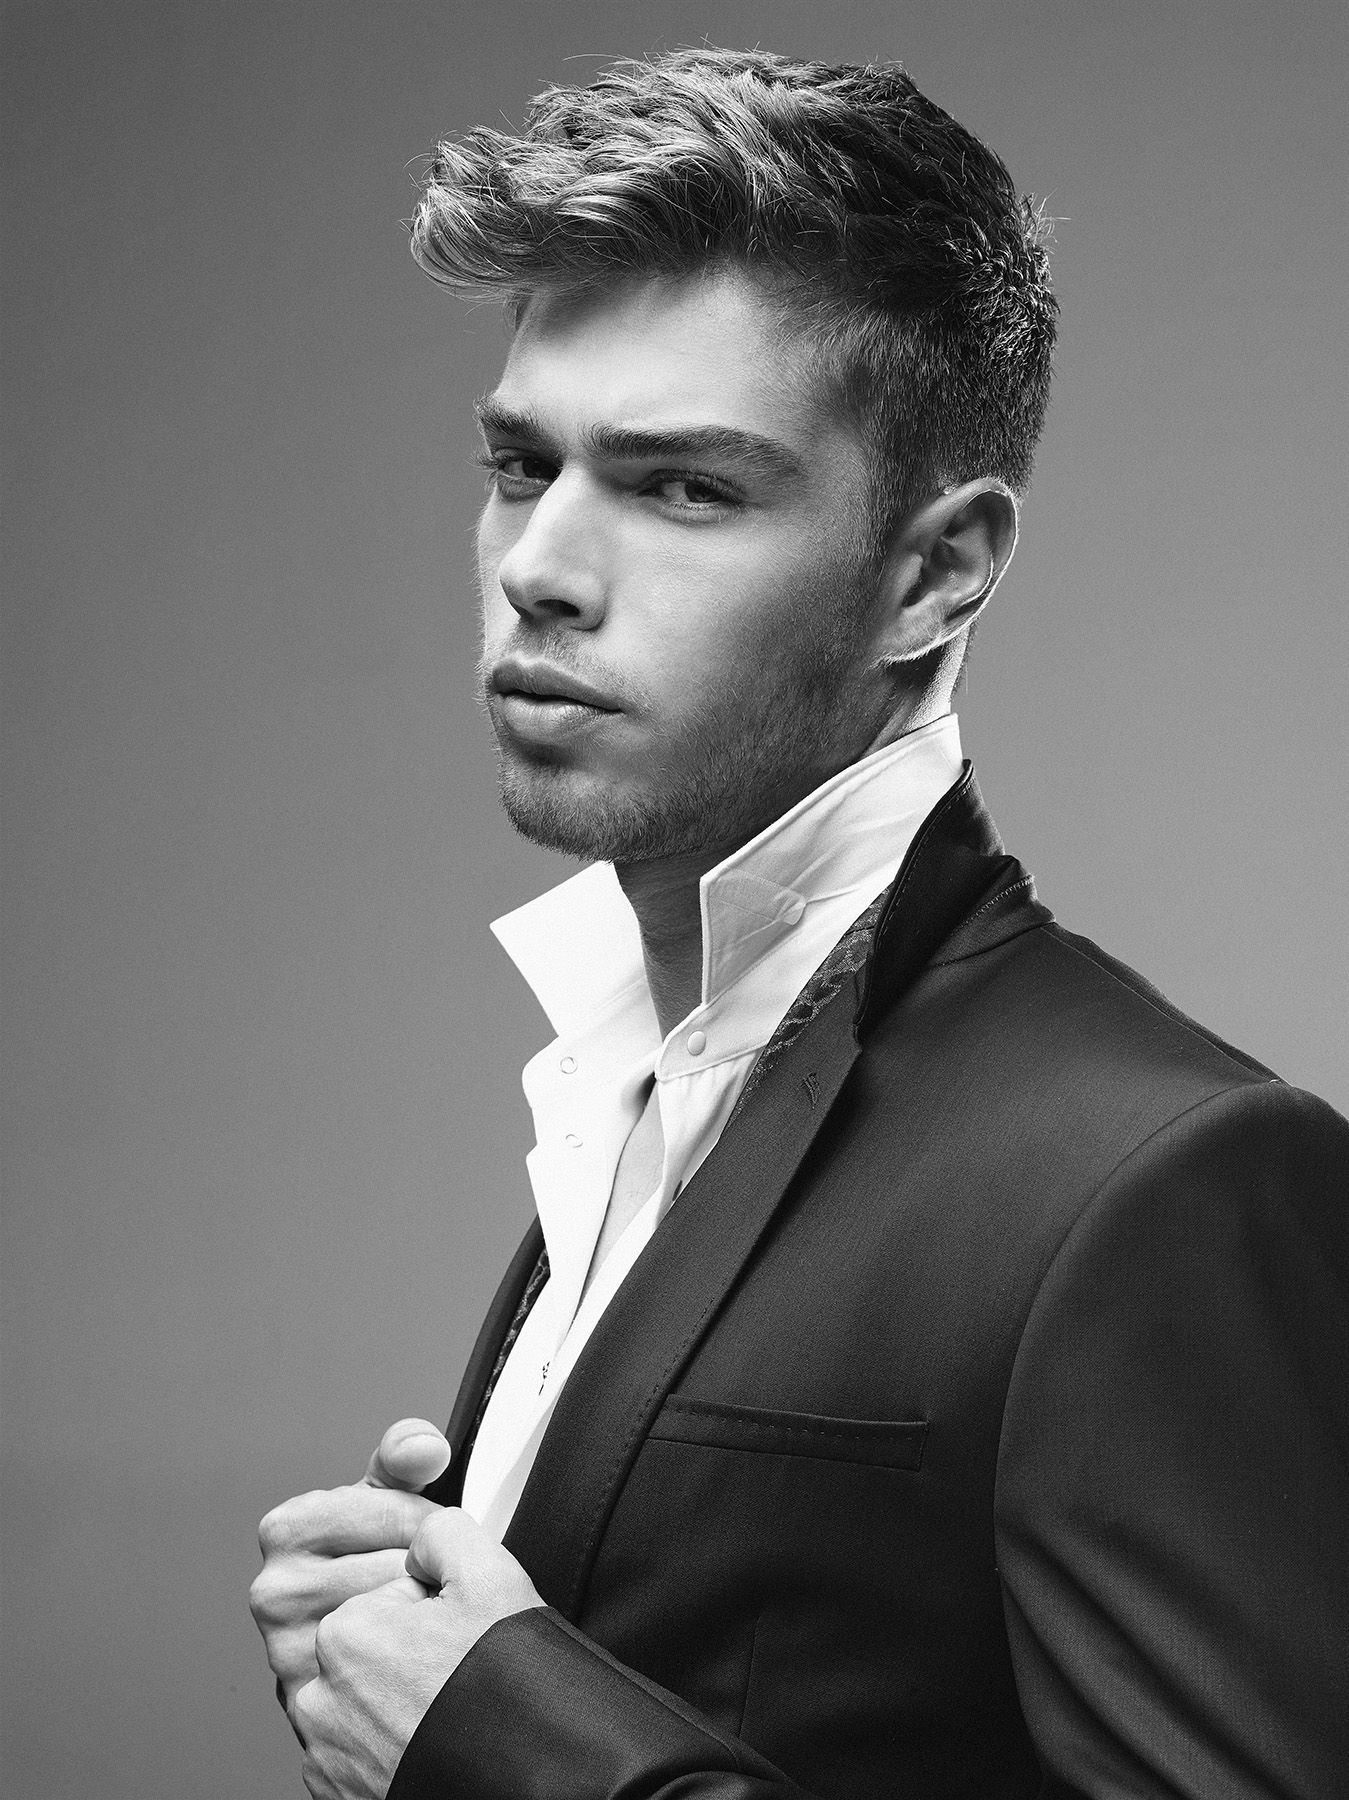 14 of the Most Gorgeous, Well-Groomed Guys on the Globe. Anitha Skov from Denmark